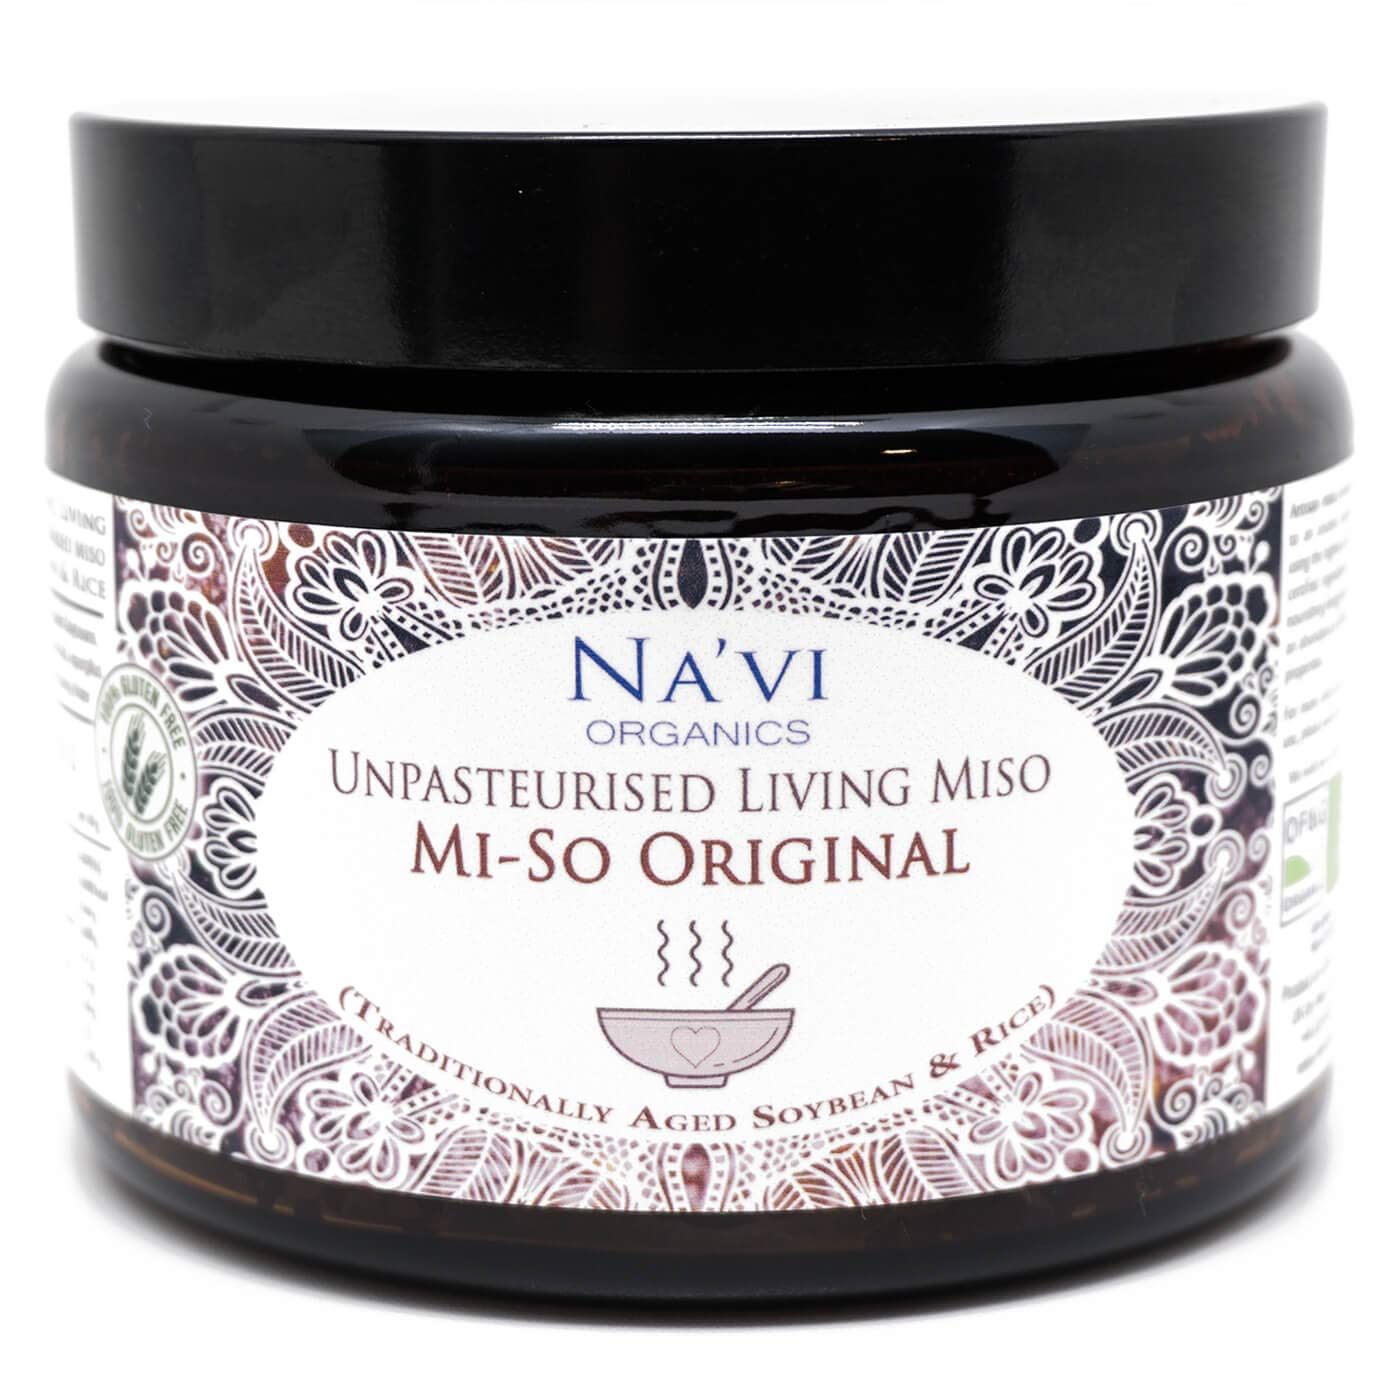 Organic Traditionally Aged Rice & Soy Miso - Unpasteurised & Alive! (500g)